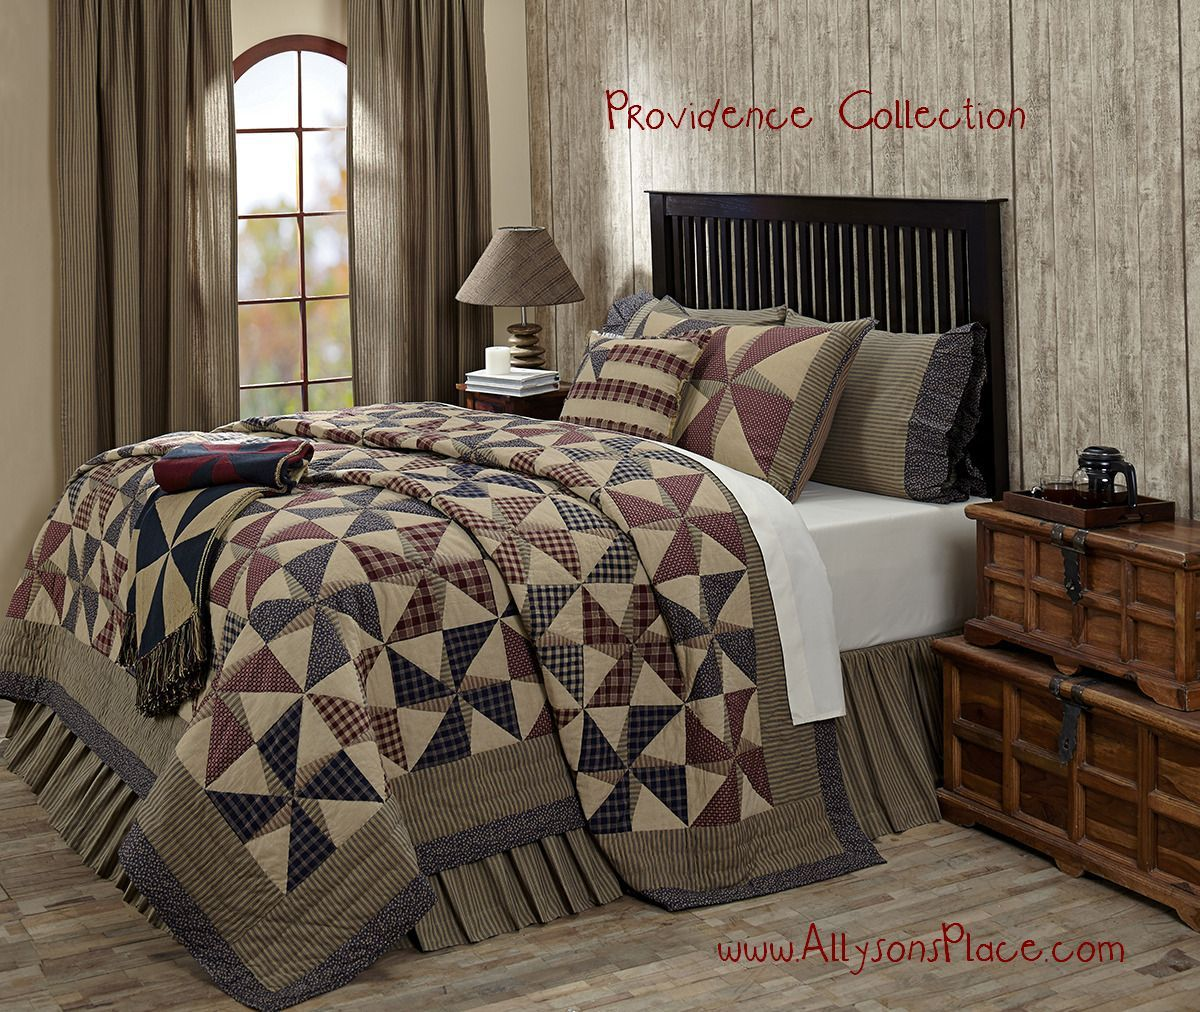 Teton Star A Country Rustic Quilt Collection by VHC